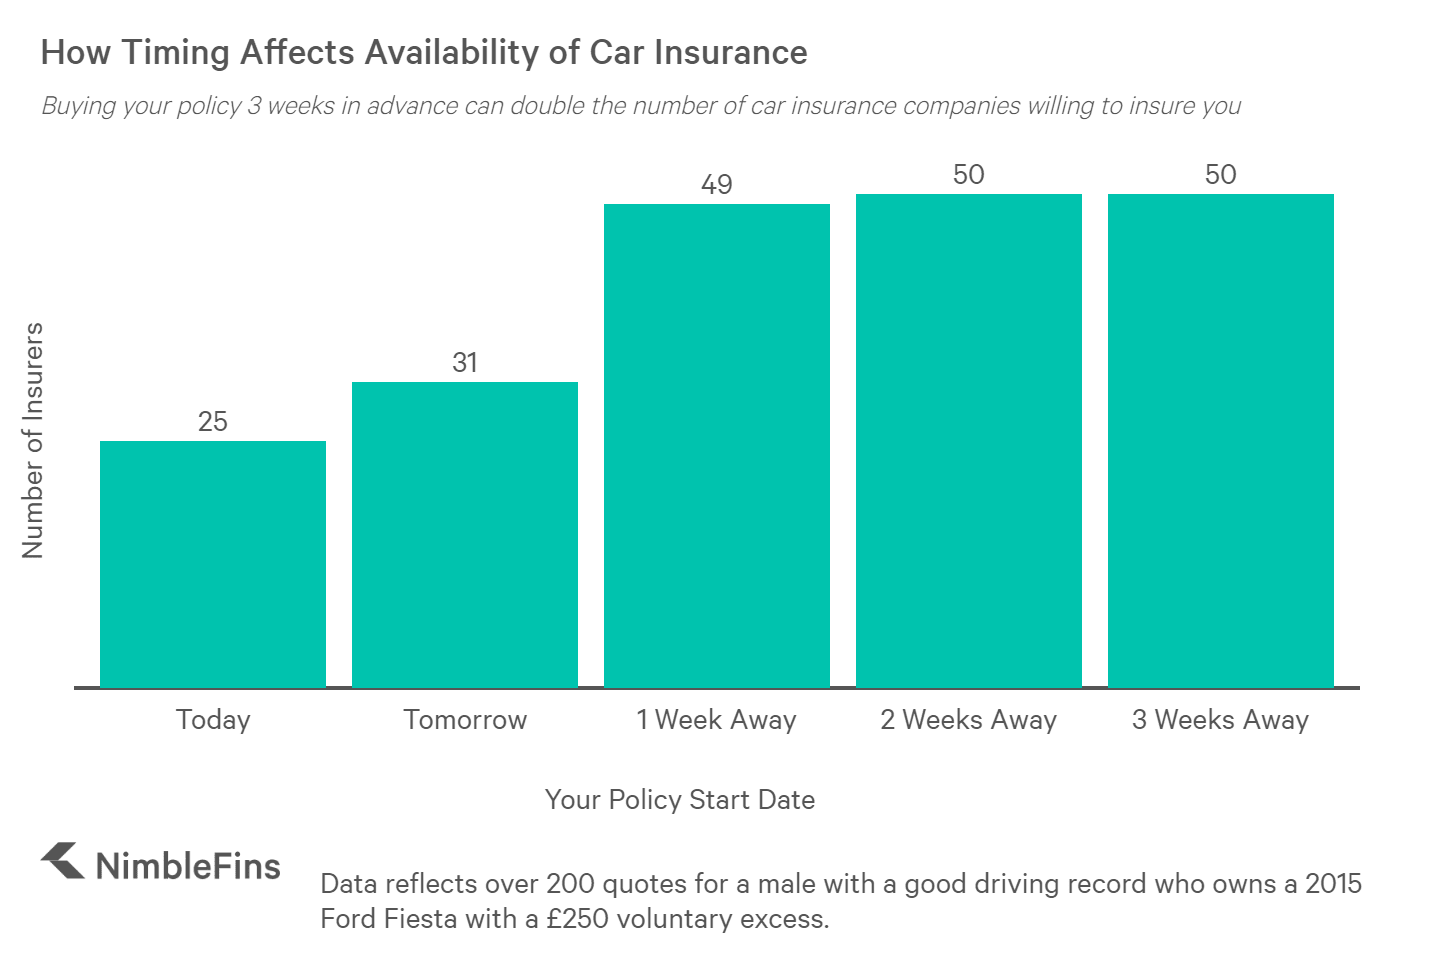 chart showing availability of car insurance depending on when you buy